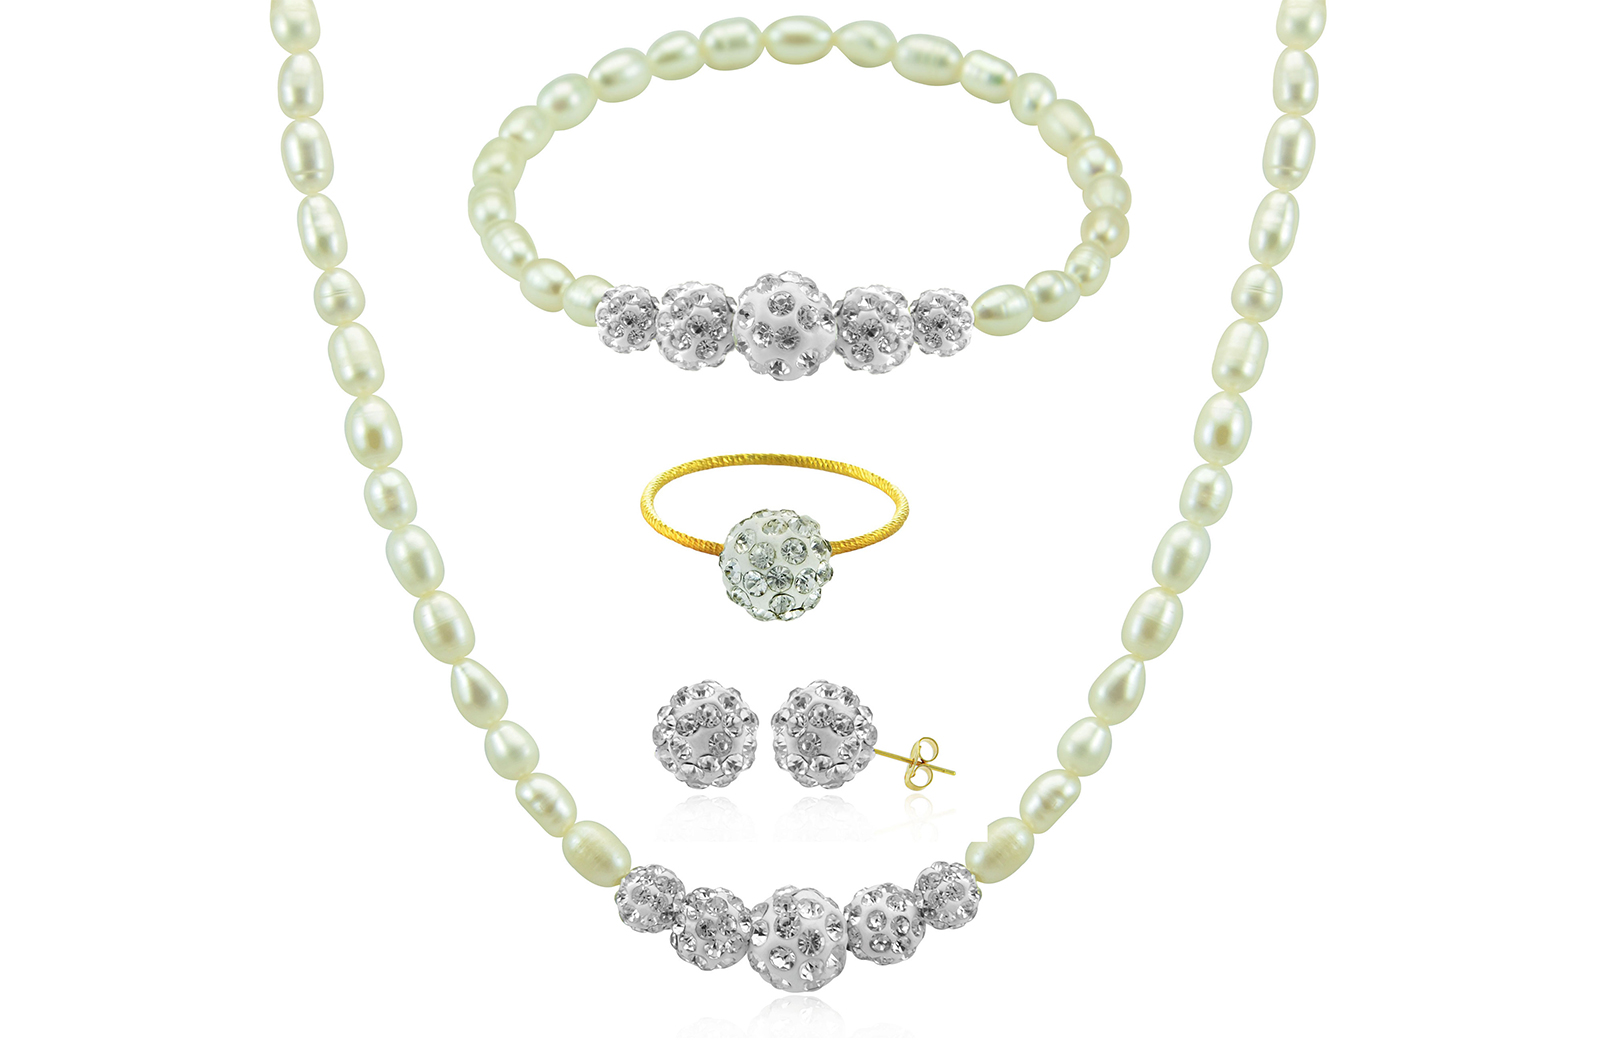 Vera Perla 10K Gold Gradual Crystal Balls & Pearls Strand 4 pcs. Jewelry Set